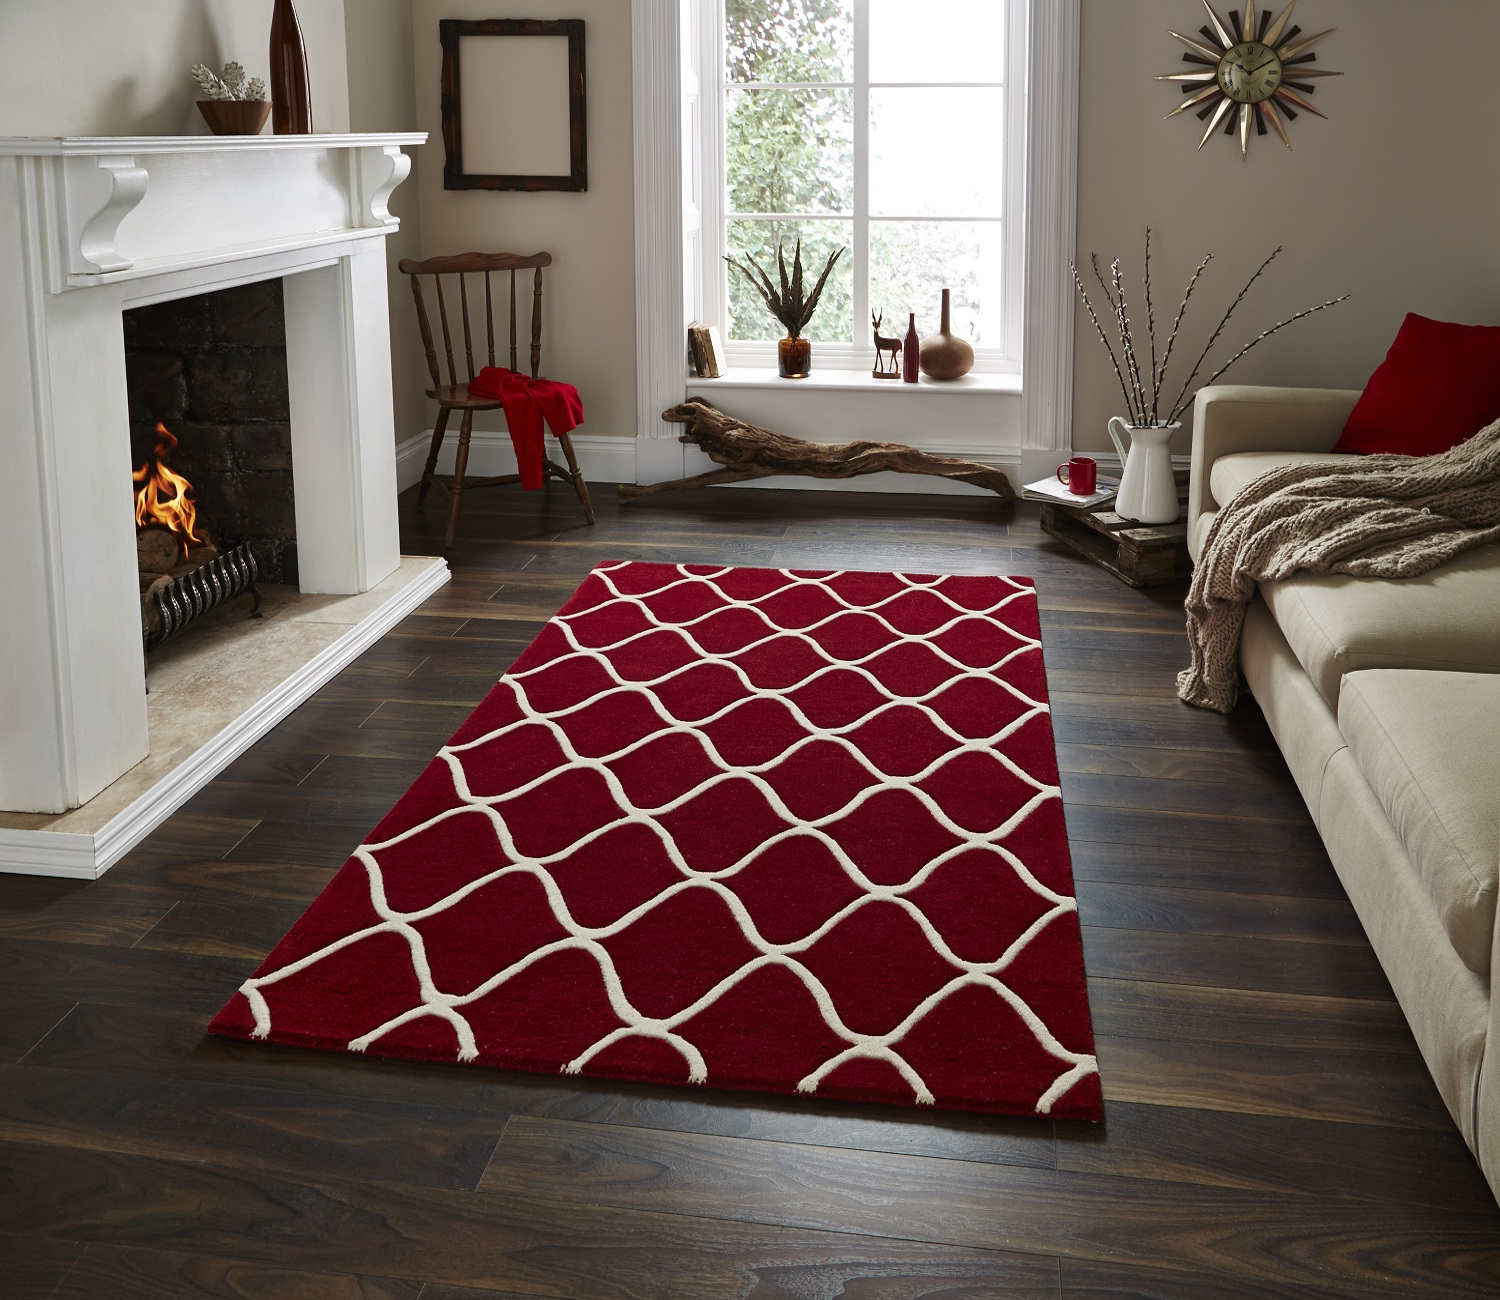 Wave Design Hand Tufted 100 Wool Rug Contemporary Home Decor With Regard To Large Red Rugs (Image 14 of 15)